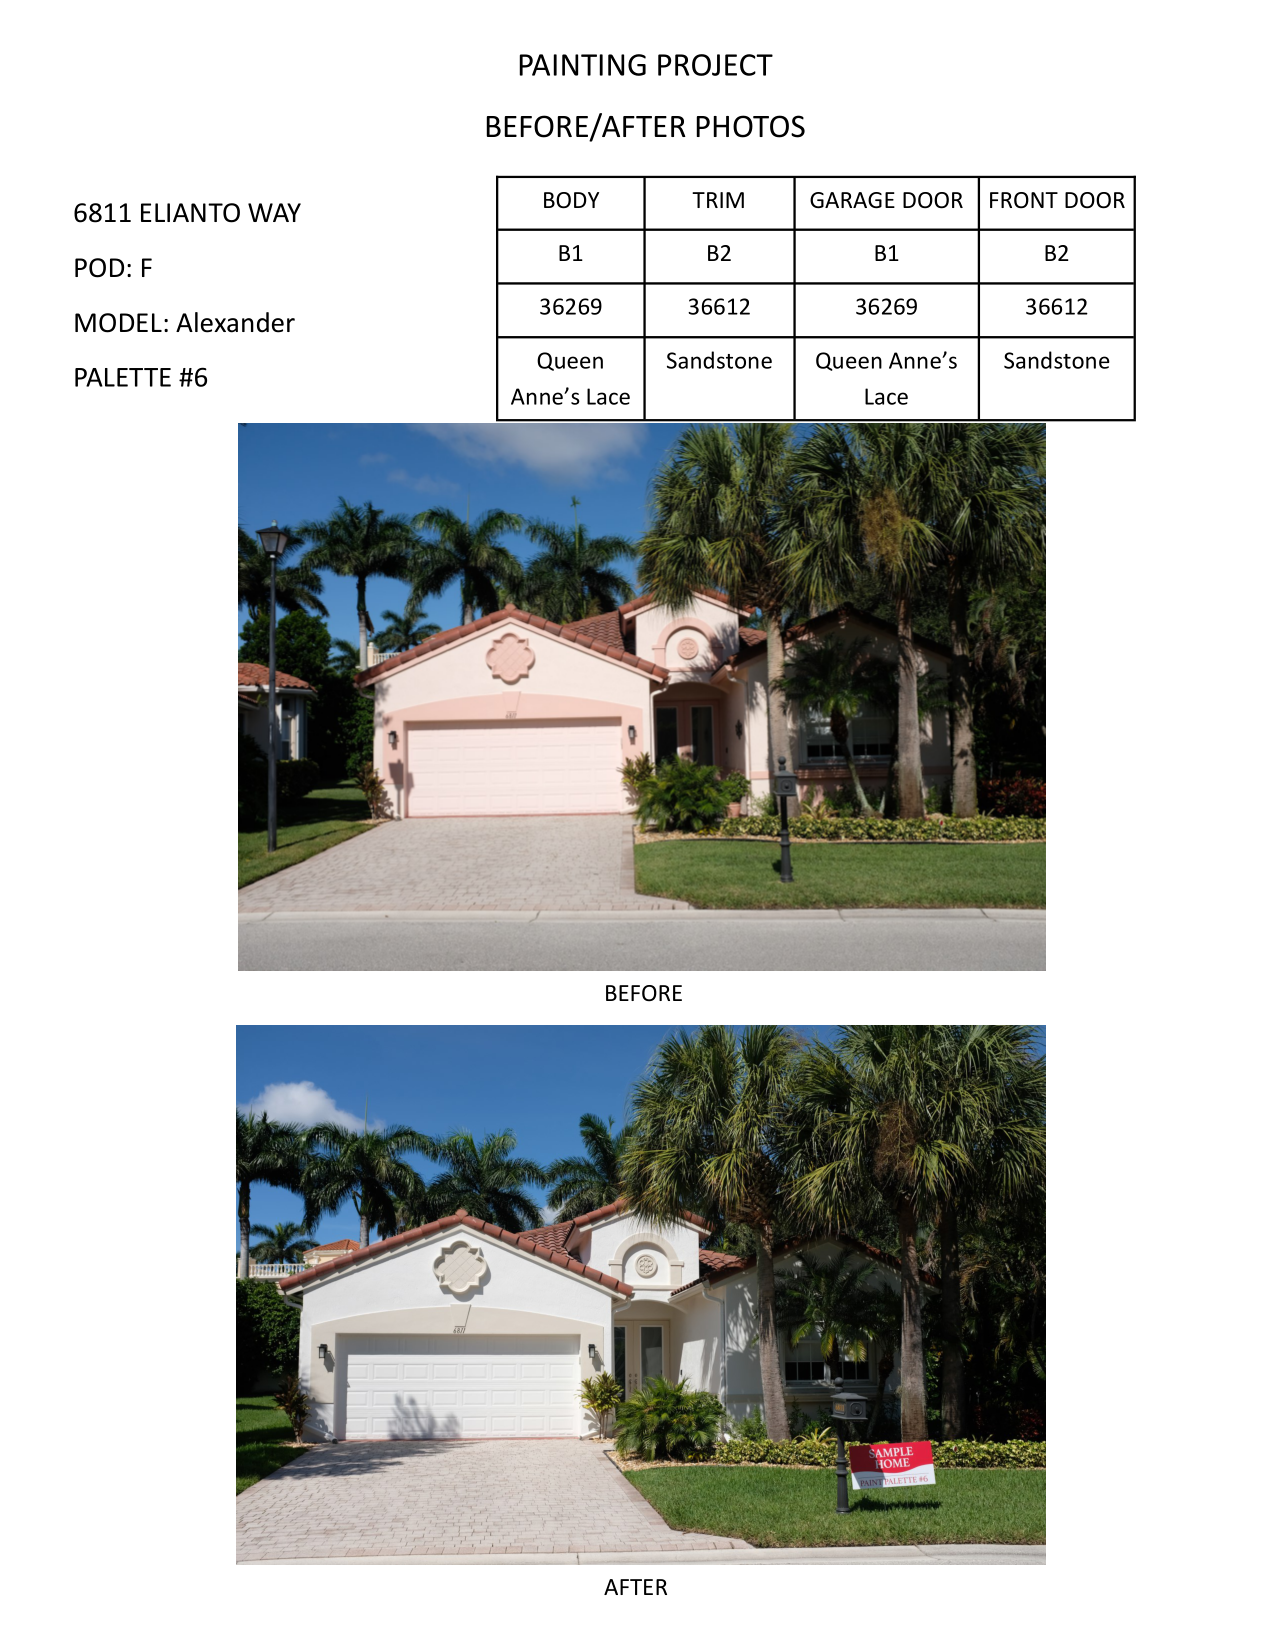 b4aftersample homes pictures-8.png